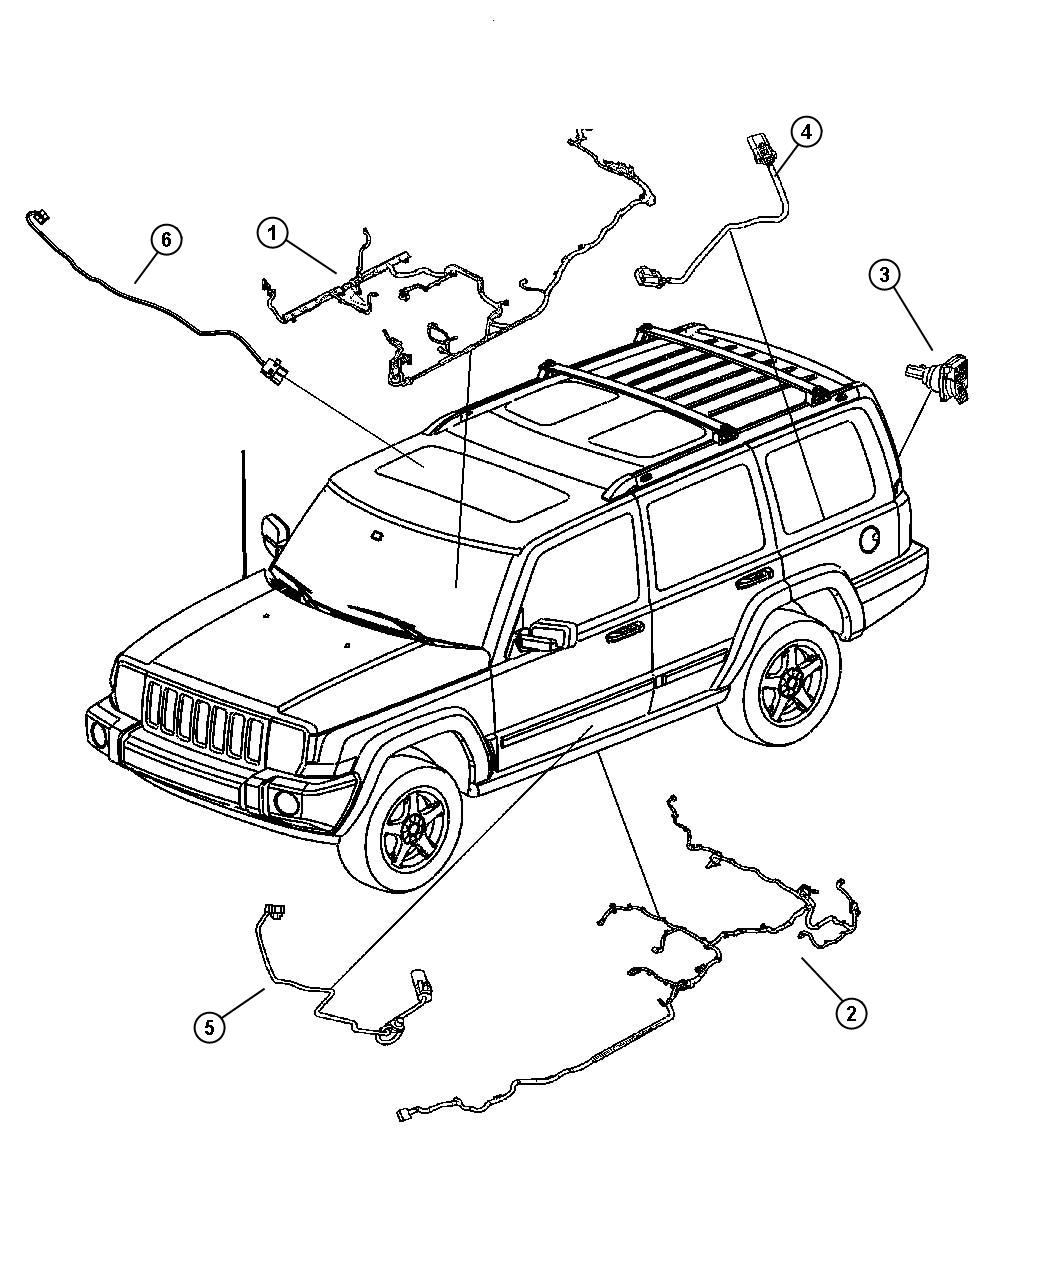 Diagram Of How A Jeep Commander Transmission Is